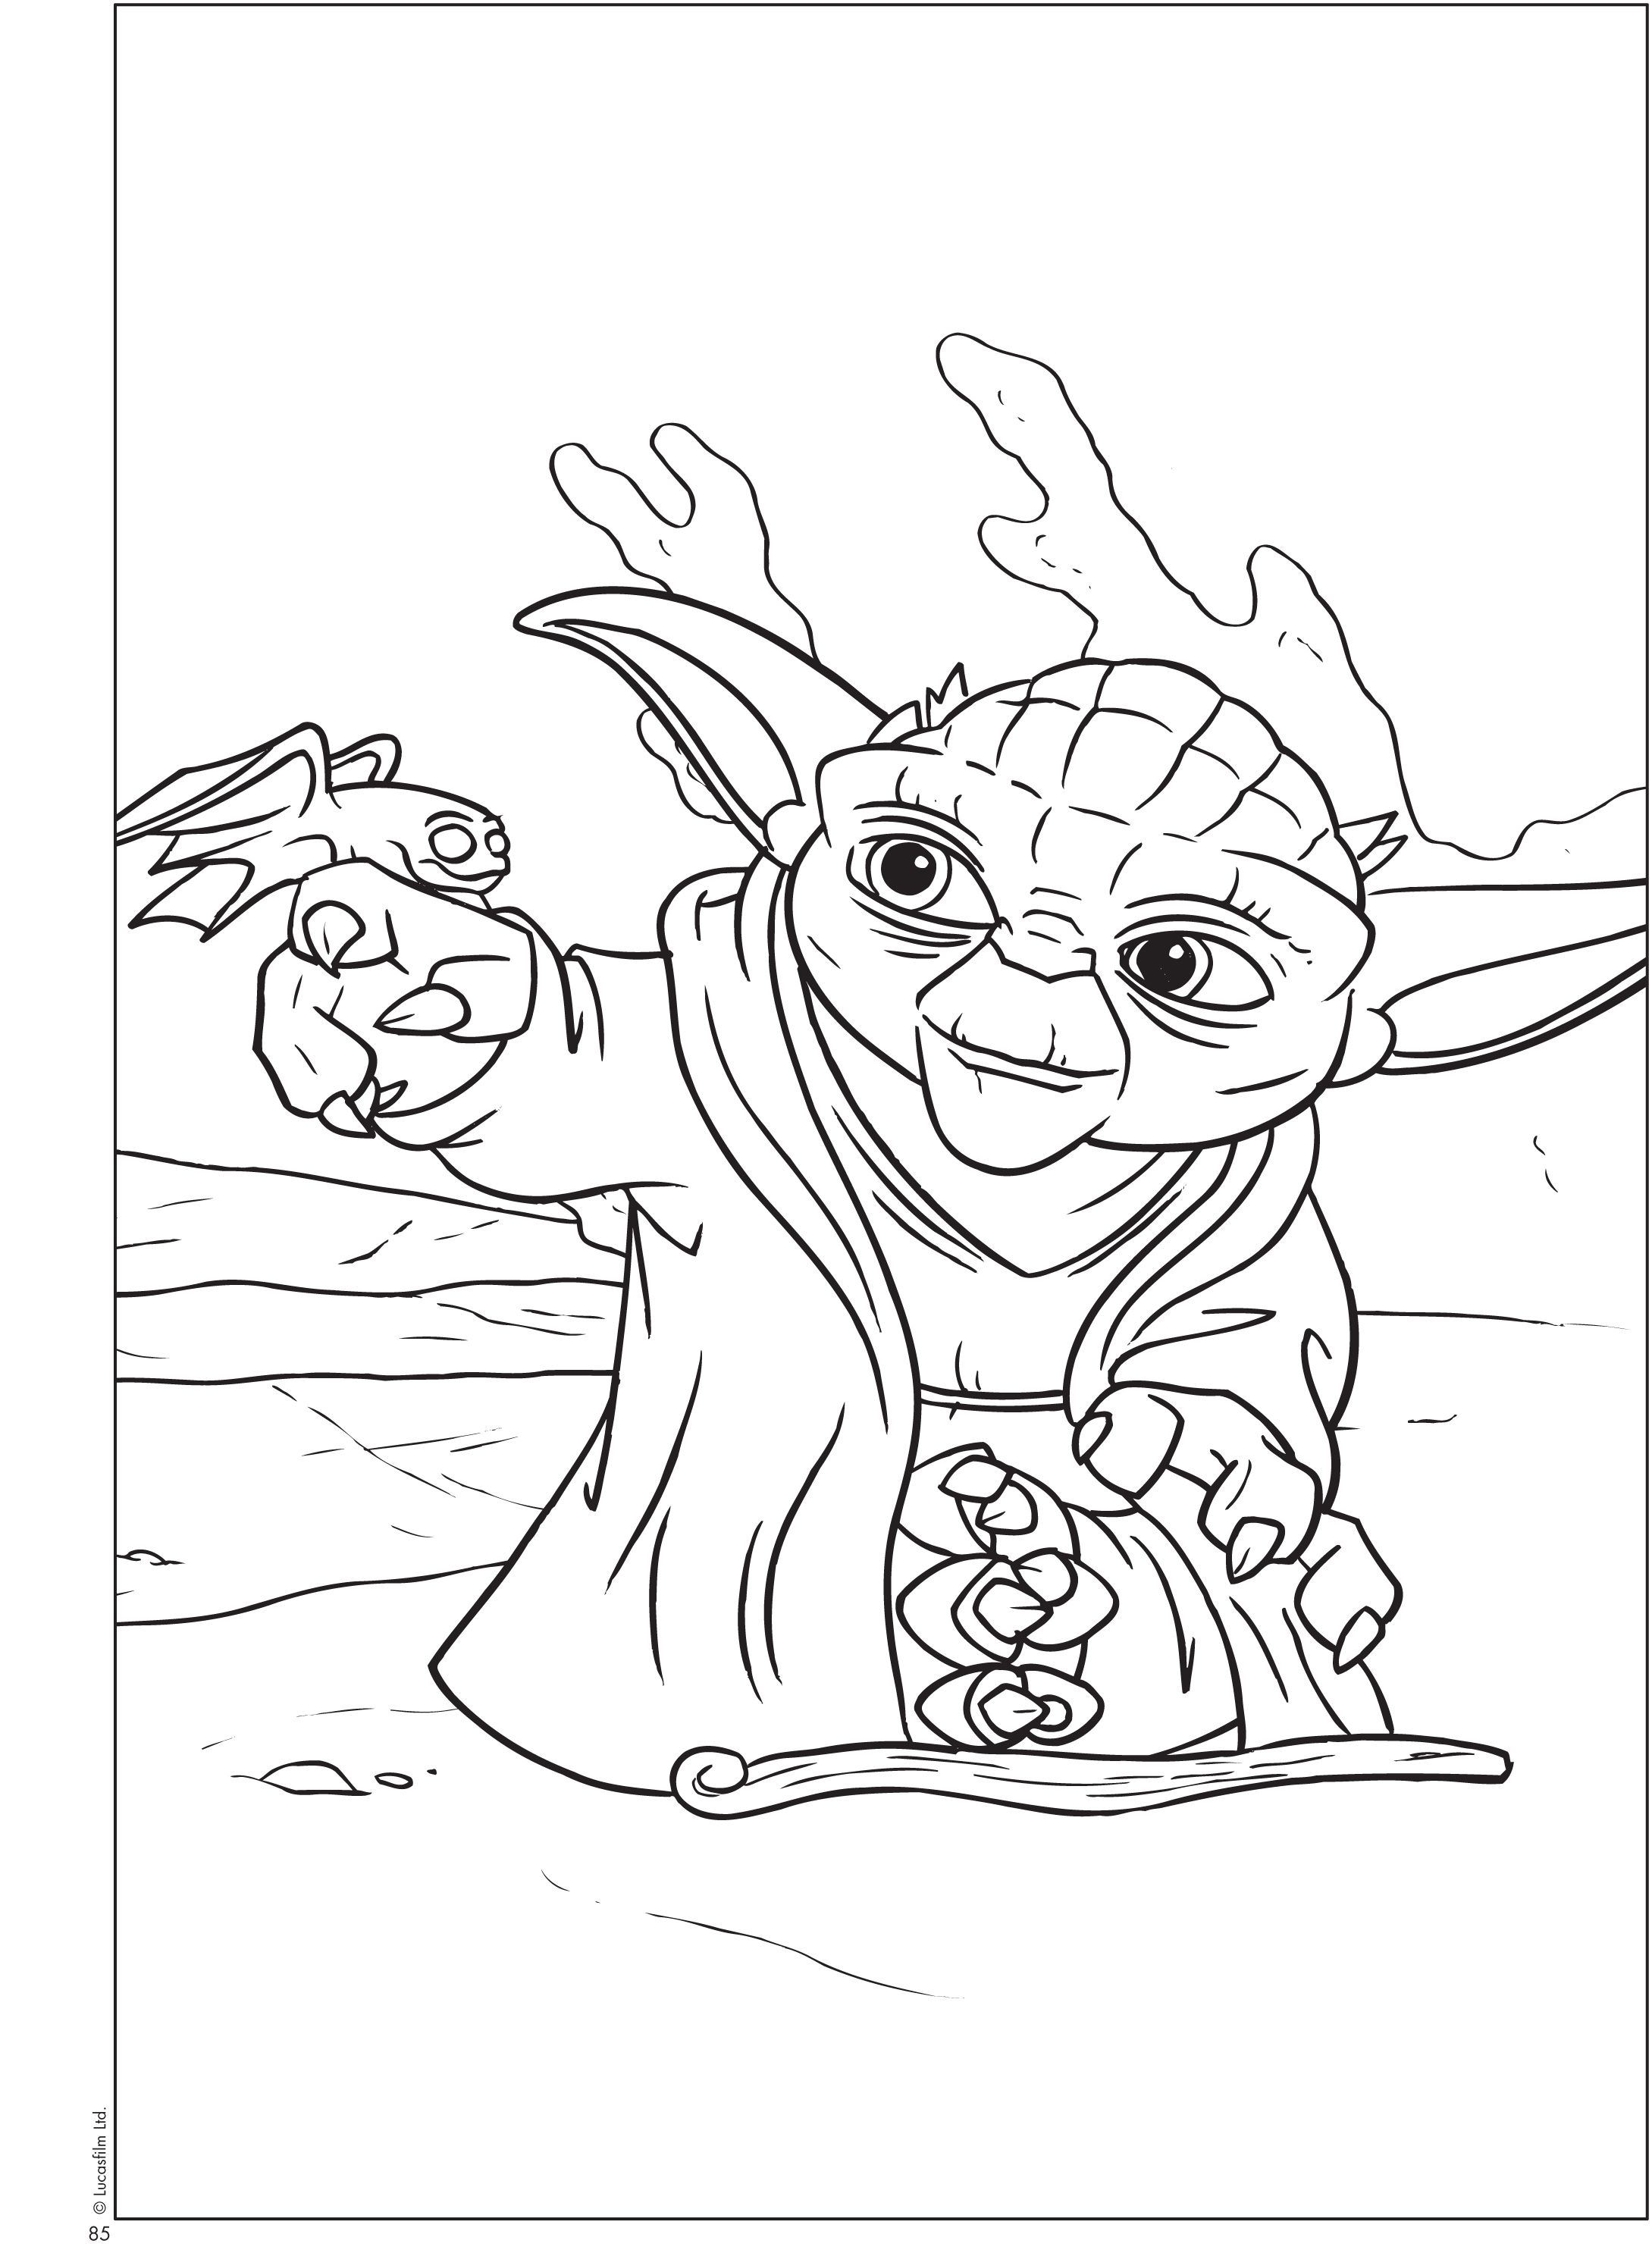 27 Star Wars Coloring Pages ideas  coloring pages, star wars